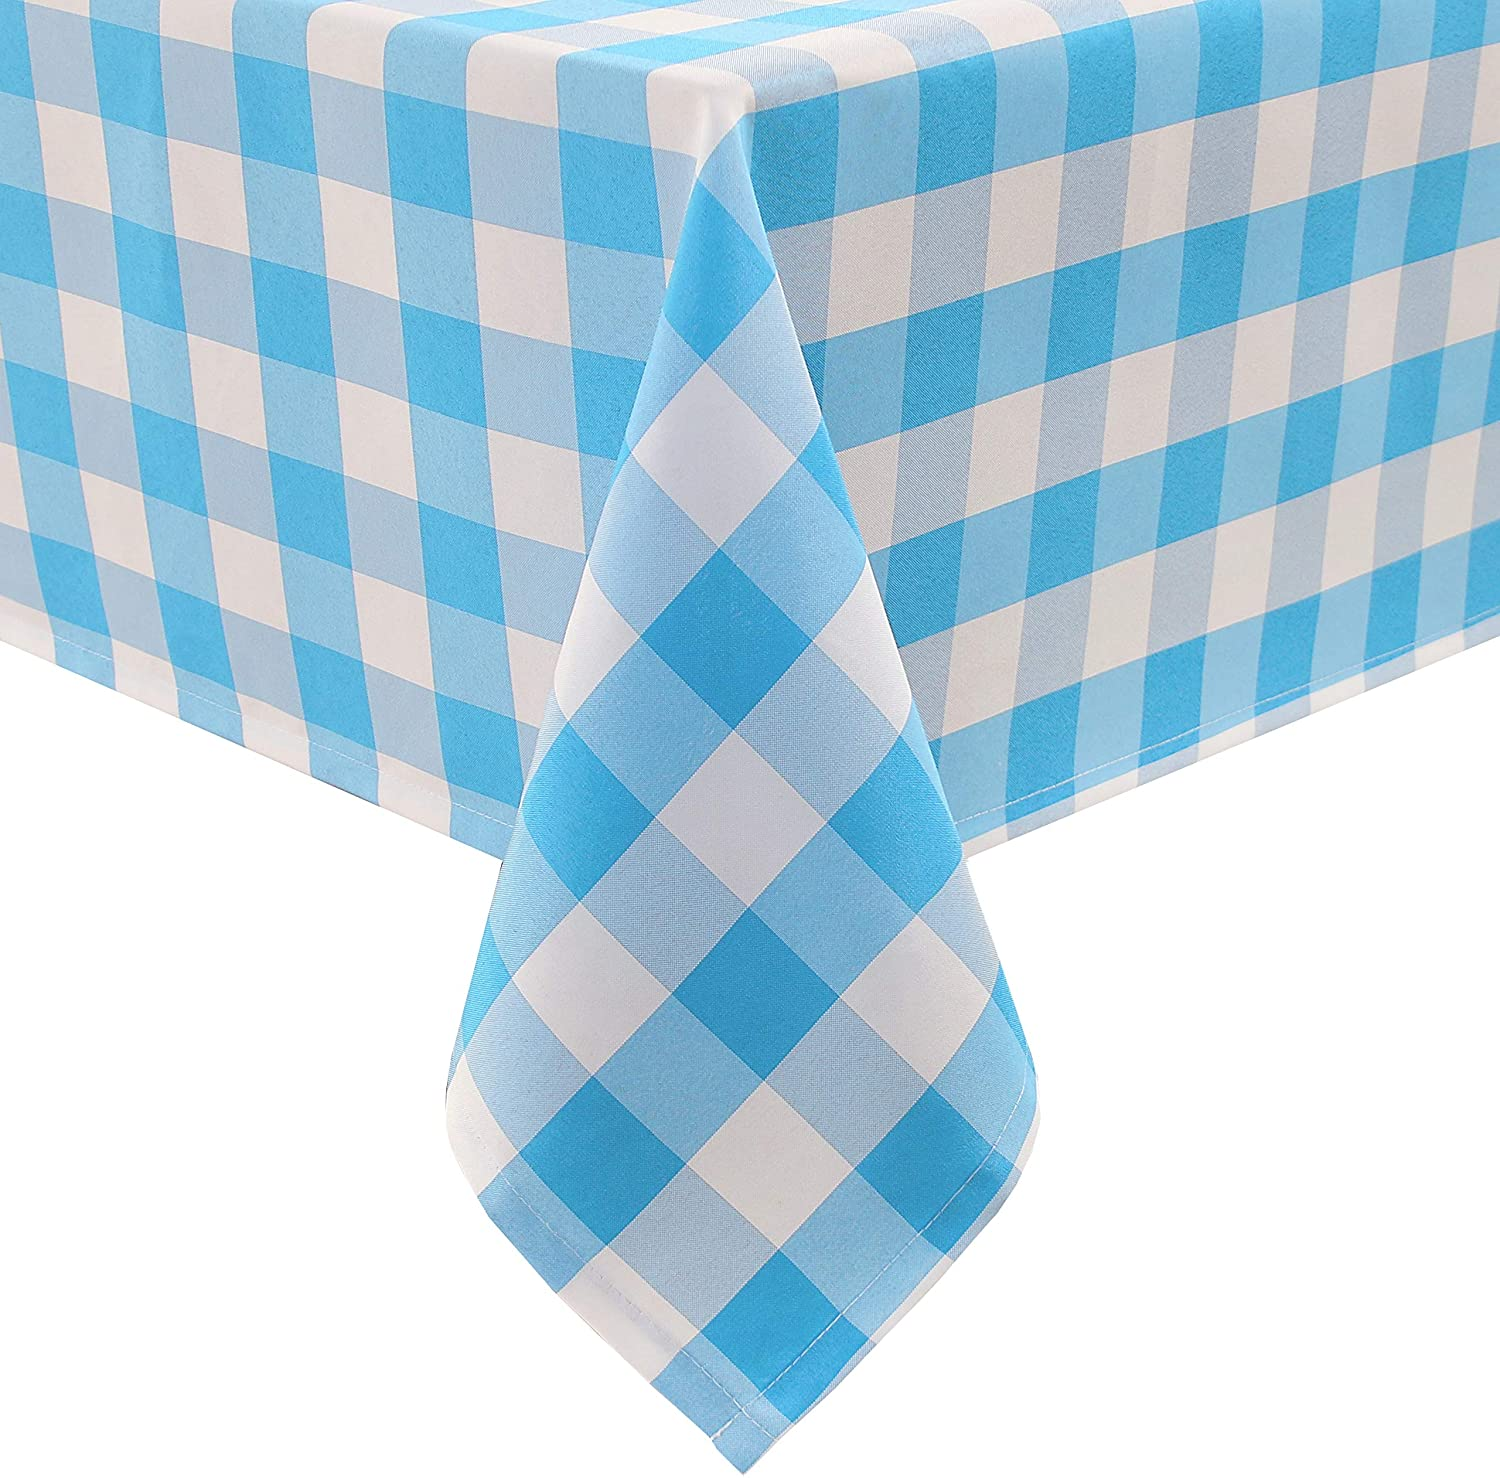 Hiasan Checkered Tablecloth Rectangle - Stain Resistant, Waterproof and Washable Table Cloth Gingham for Outdoor Picnic, Holiday Dinner, 60 x 120 Inch, Sky Blue and White